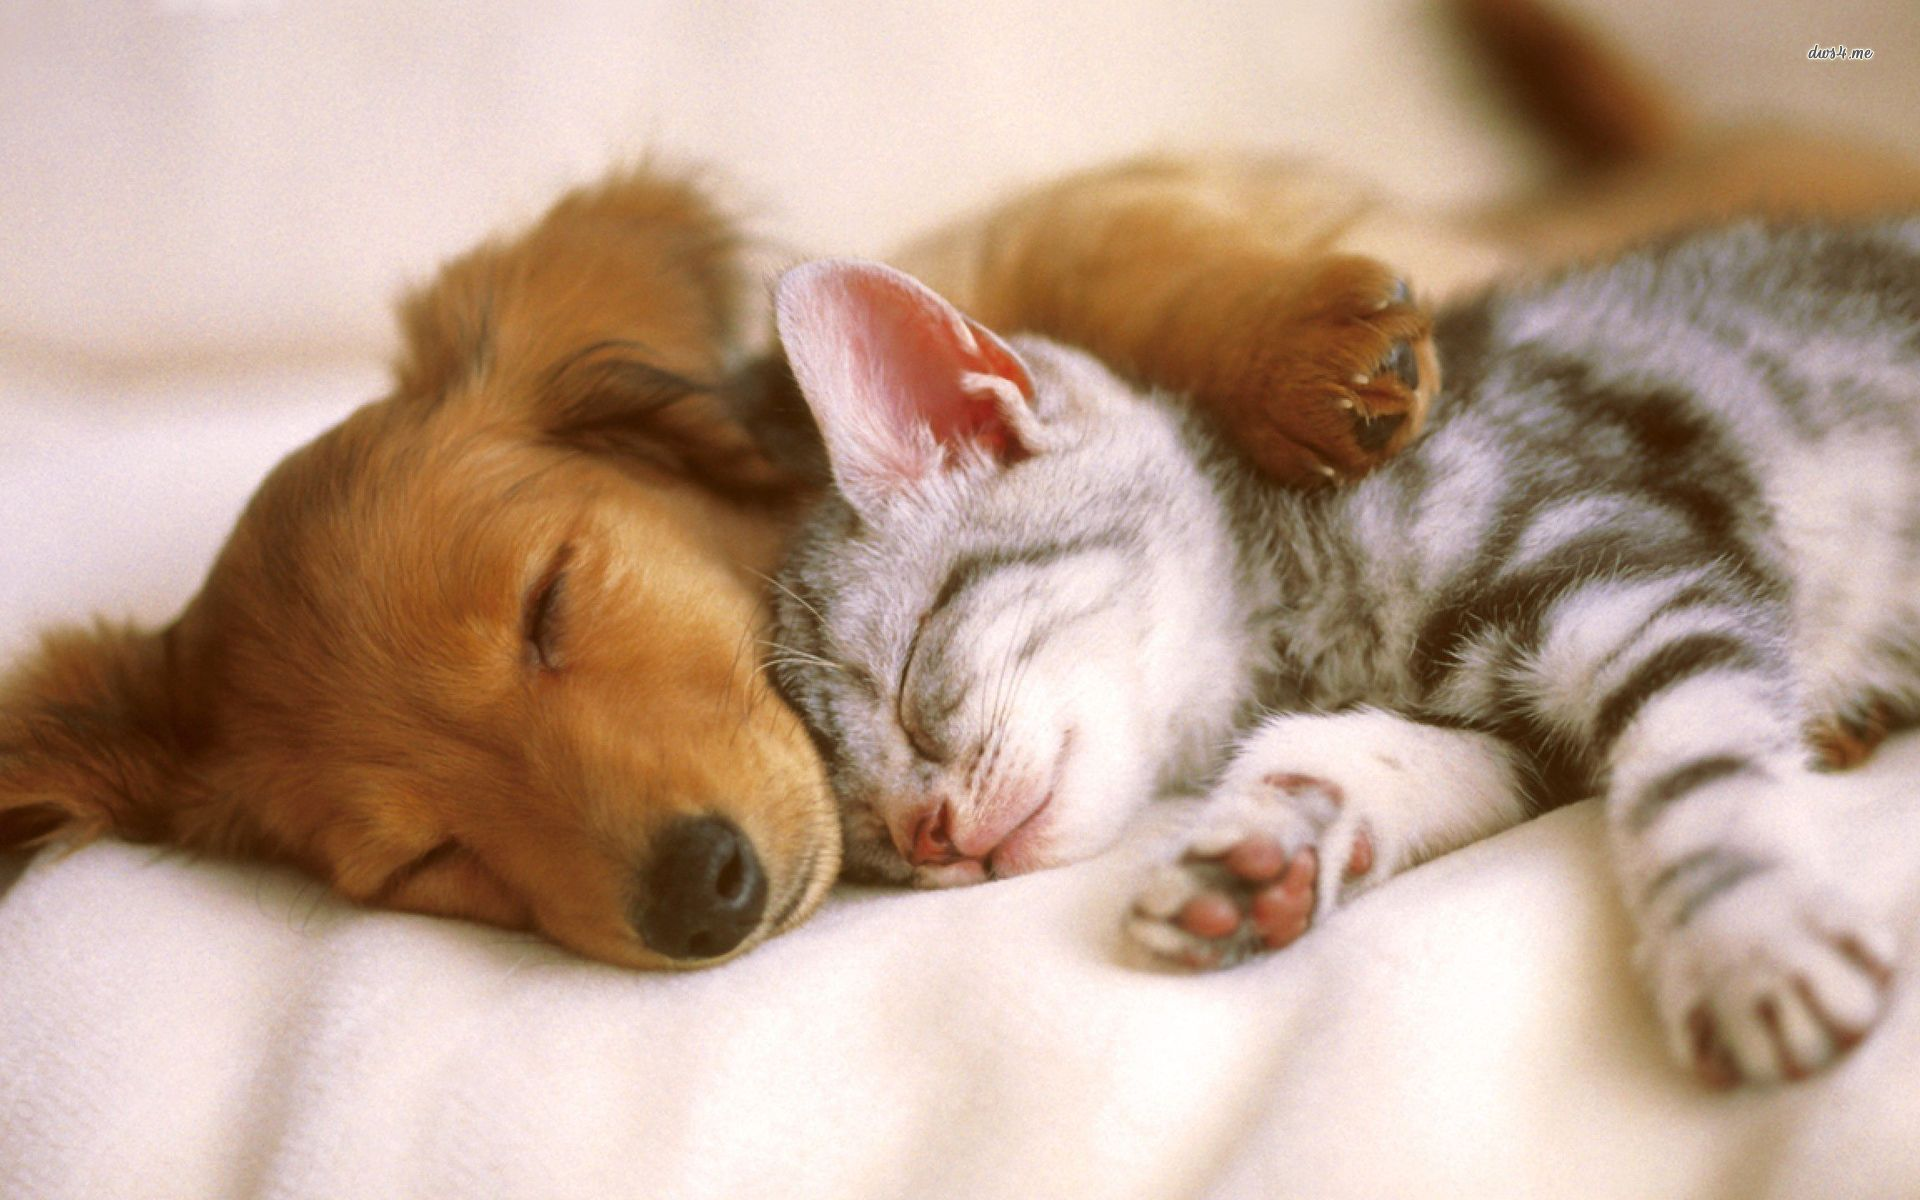 Cute Dachshund Puppy Kitten Sleeping Together Aww So Cute Cute Puppies And Kittens Kittens And Puppies Kittens Cutest